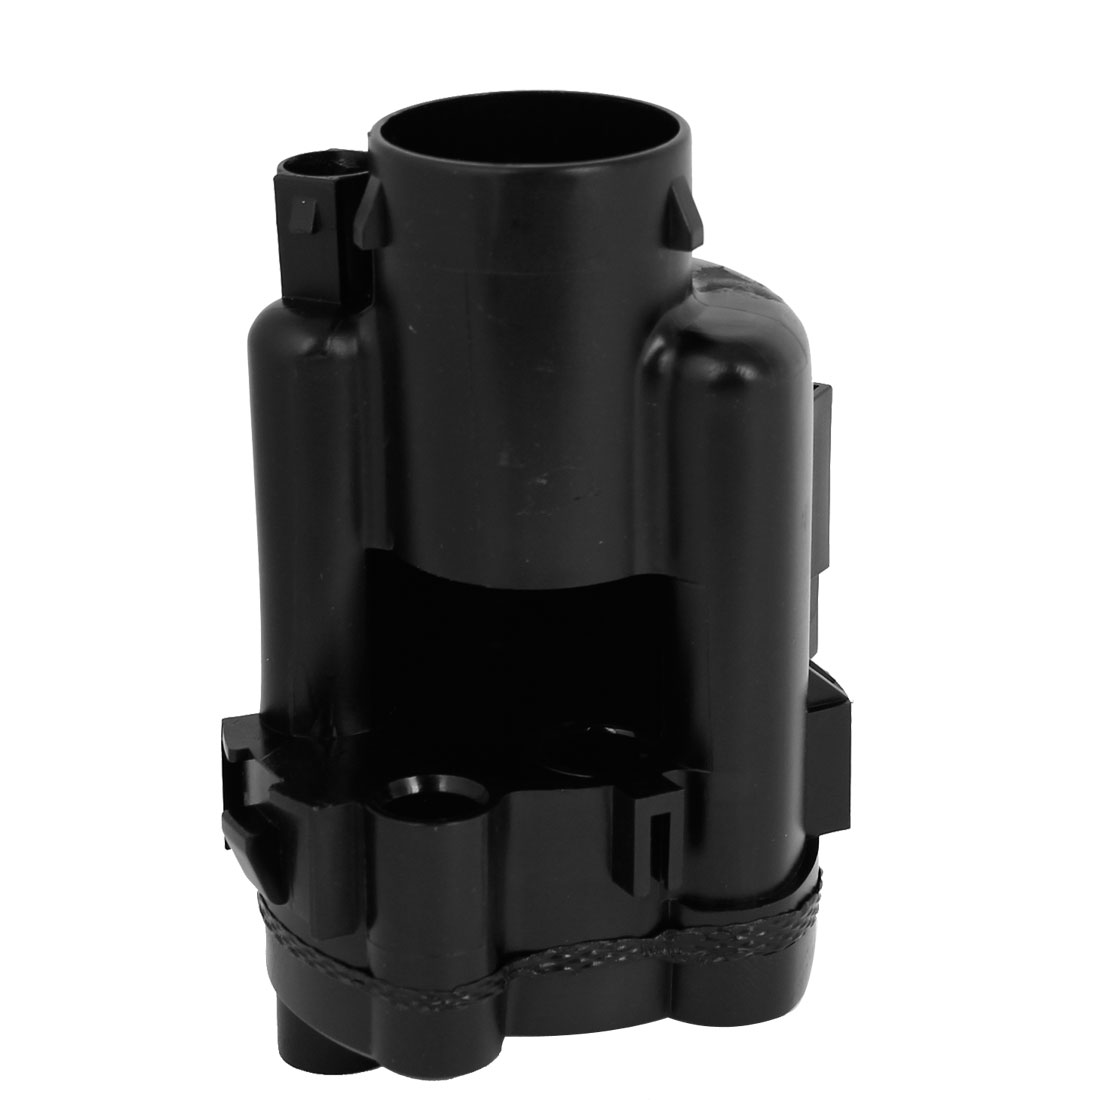 Vehicle Car Black Plastic Oil Fuel Filter Assembly 31112-26000